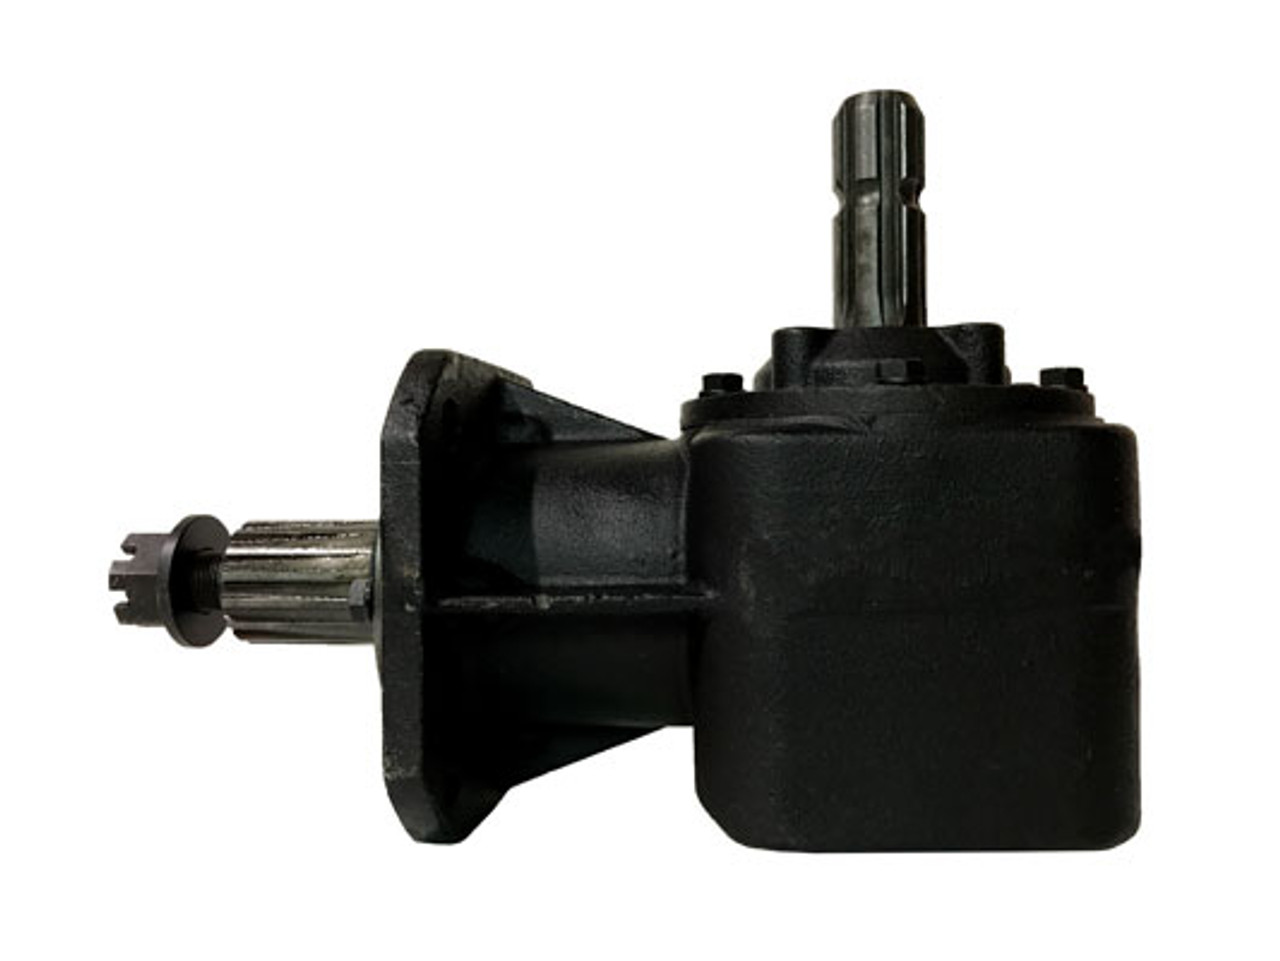 GEARBOX 401-0173-03